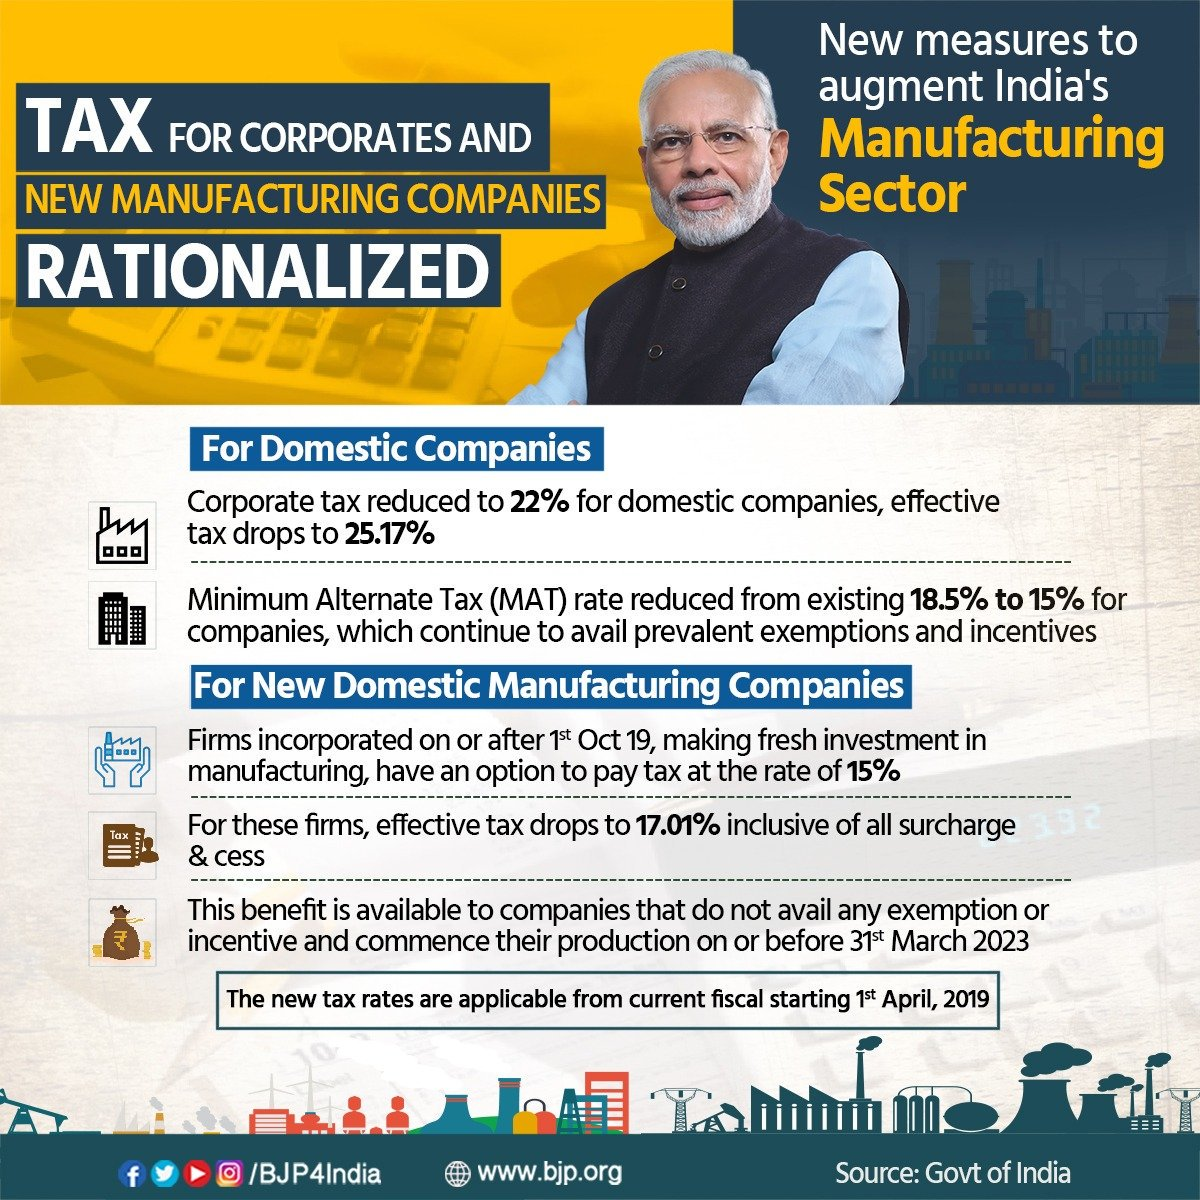 Modi Govt announces major tax reforms to boost investment, promote #MakeInIndia and create employment.  Corporate tax reduced to 22% for domestic firms while for new manufacturing companies, tax rate has been brought down to 15%, applicable from 1st April in the ongoing fiscal.<br>http://pic.twitter.com/Op4SVG7gXD